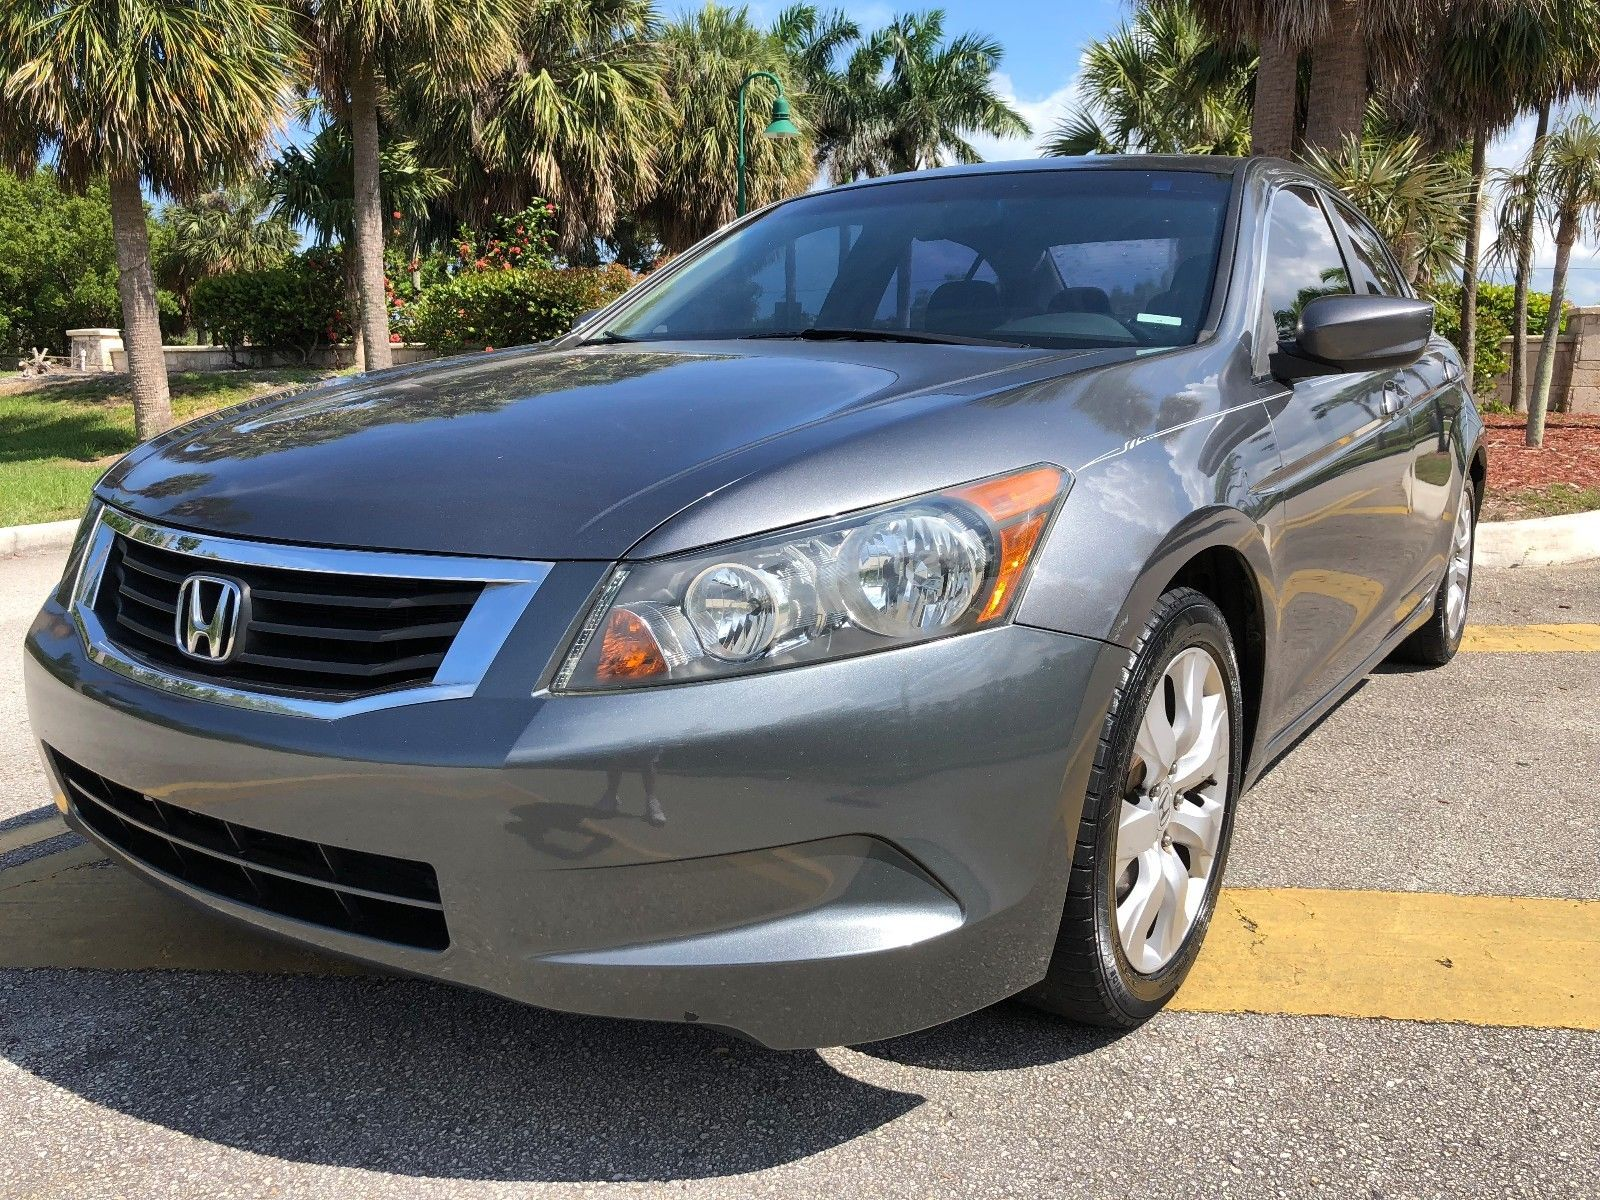 Awesome 2009 Honda Accord In Excellent Condition Fully Loaded With Options 2018